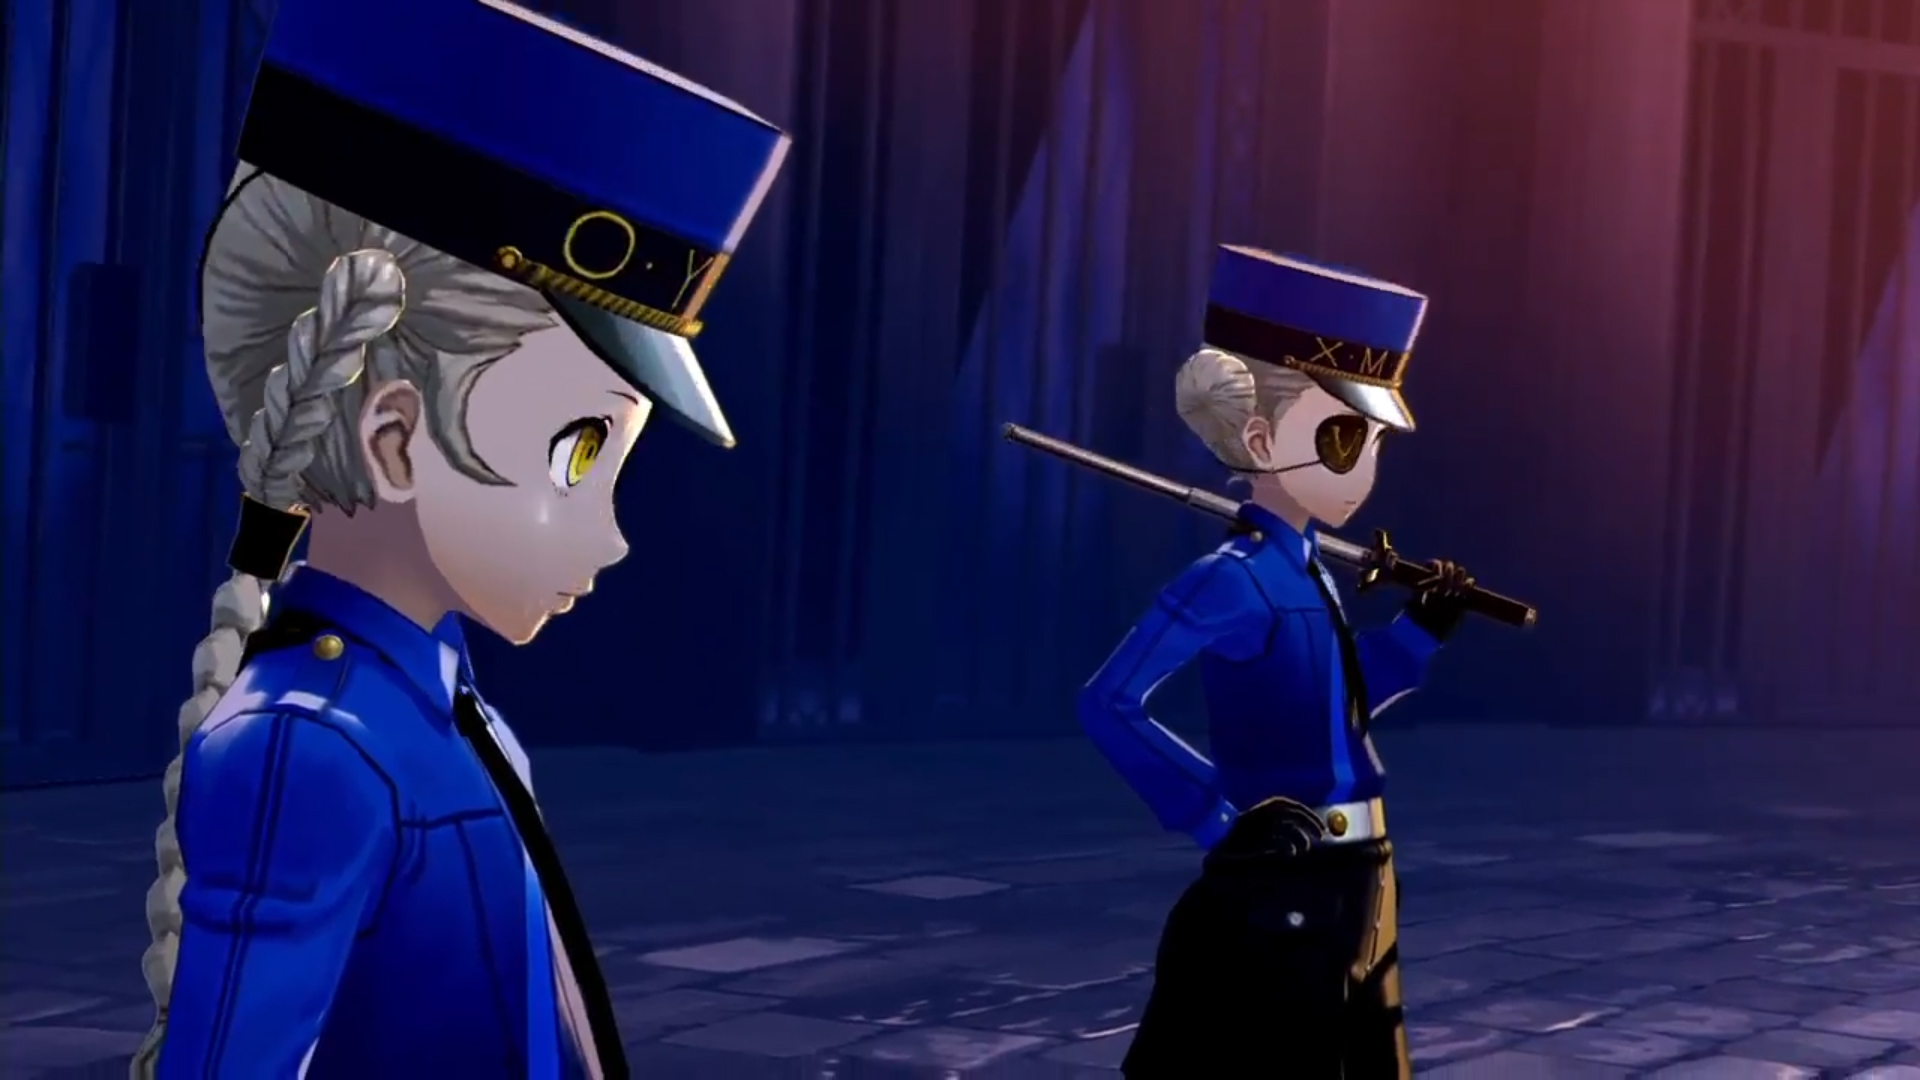 Atlus issued a DMCA Takedown notice to emulation group over Persona 5